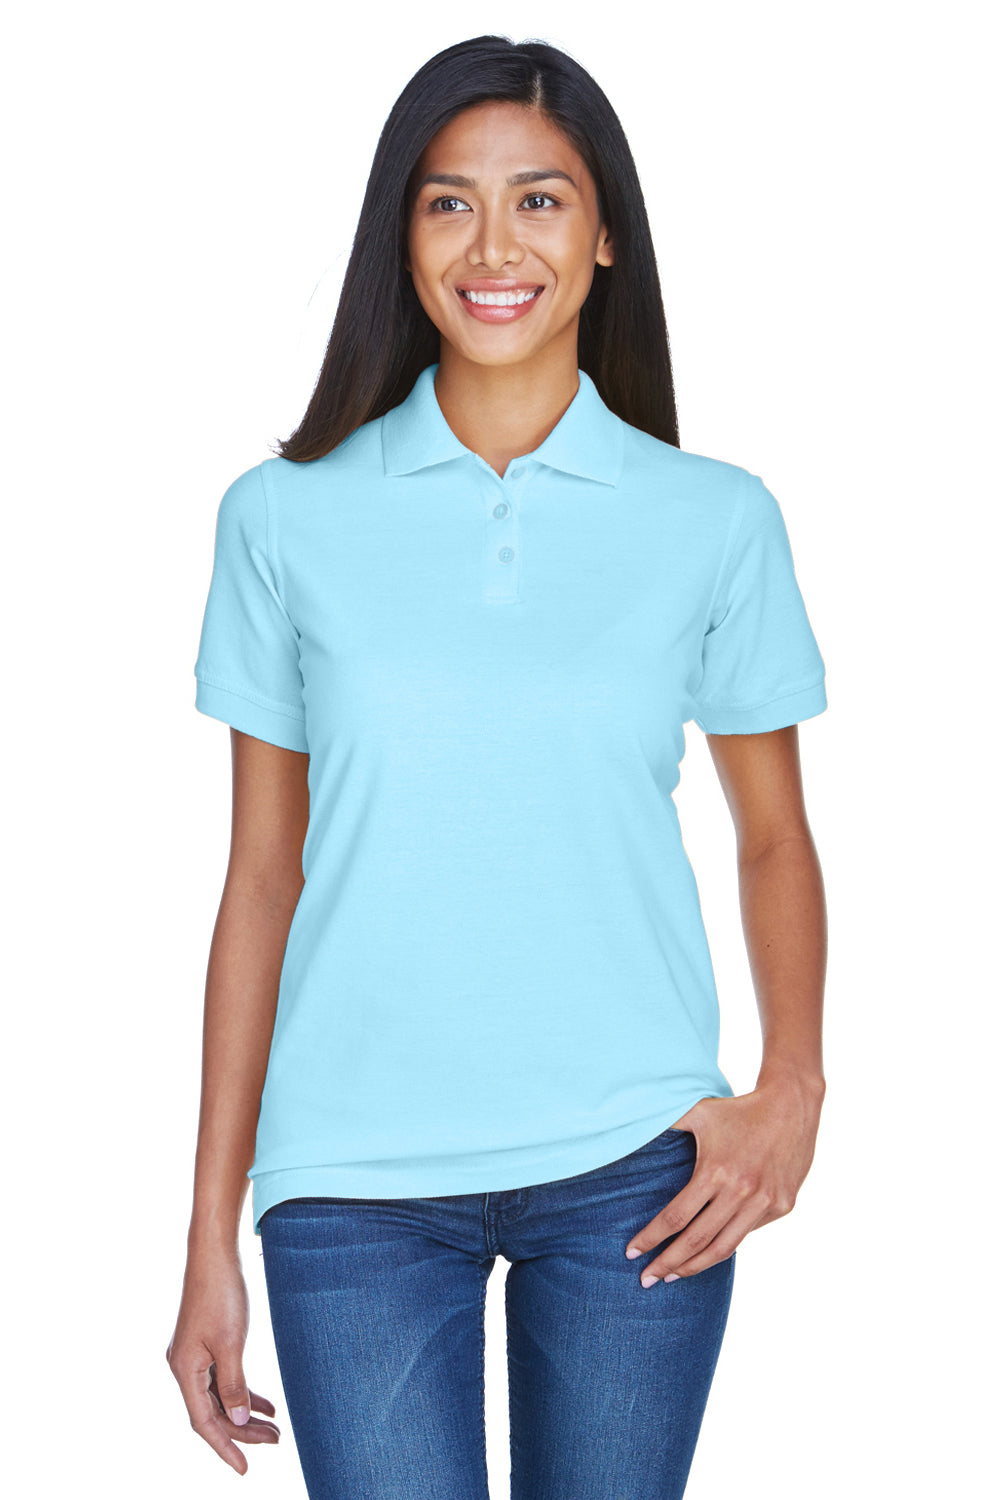 UltraClub 8530 Womens Classic Short Sleeve Polo Shirt Baby Blue Front